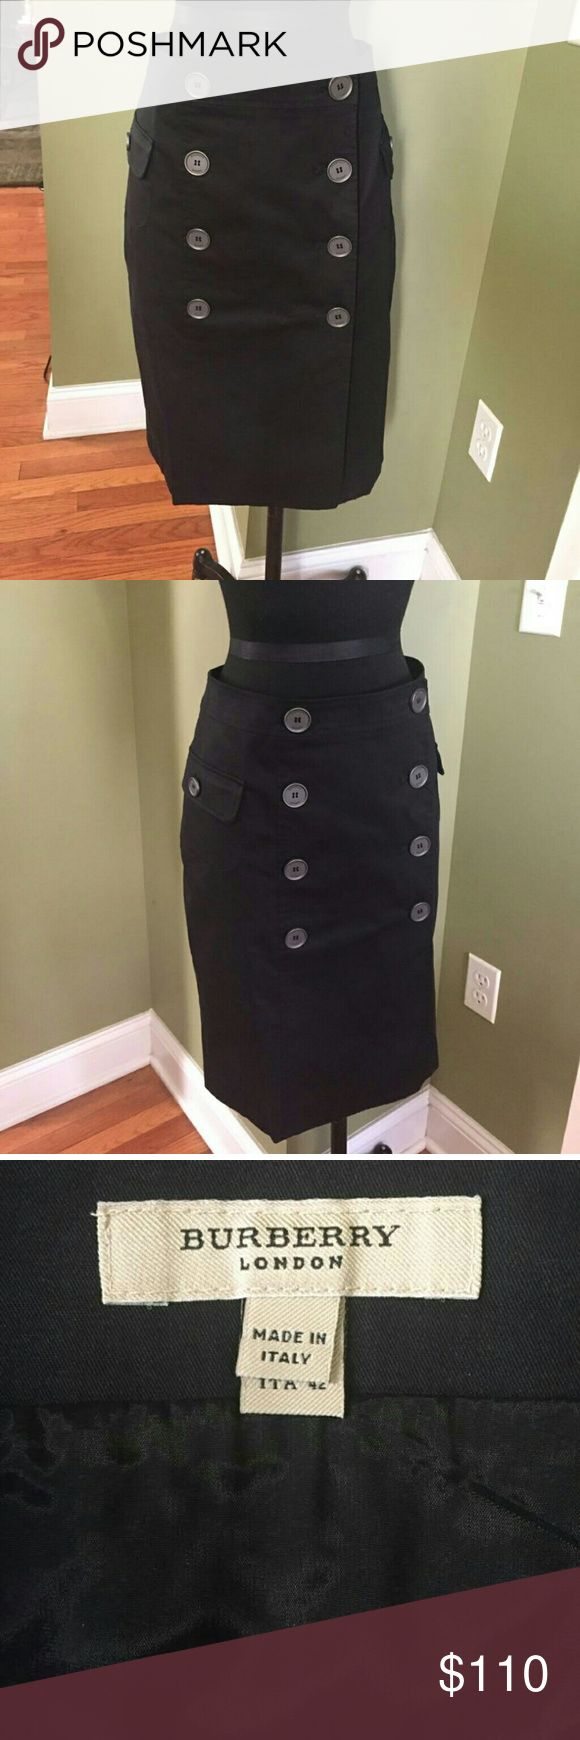 Authentic Burberry Pencil Skirt Burberry Cargo Pencil Skirt.  98% Cotton 2% elastane. 24 inch long. New never been worn. Burberry Skirts Pencil